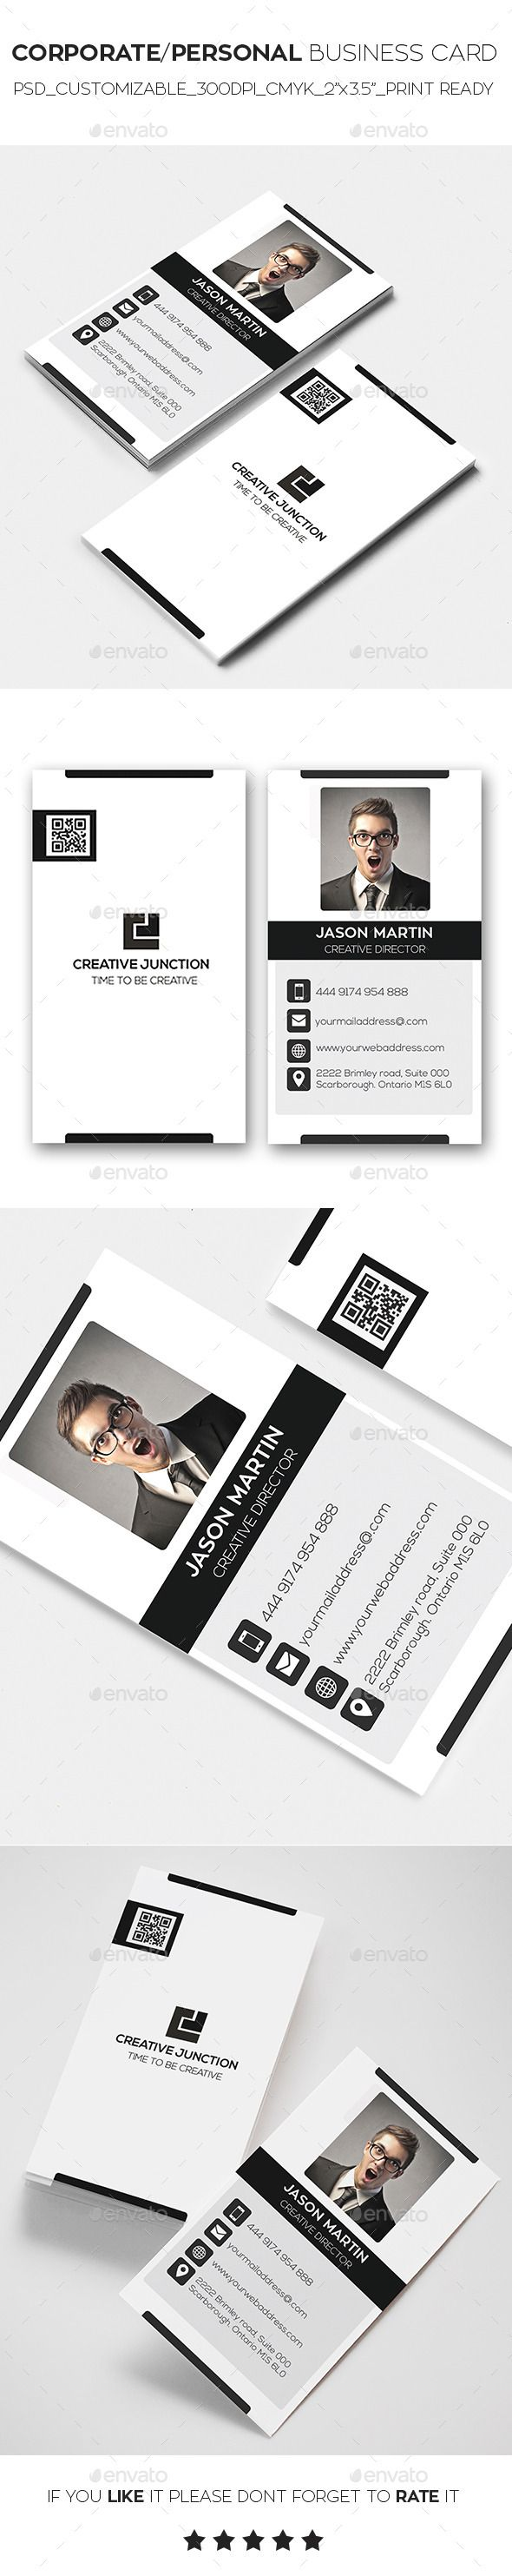 Corporate/Personal Business Card | Business cards, Business and Fonts